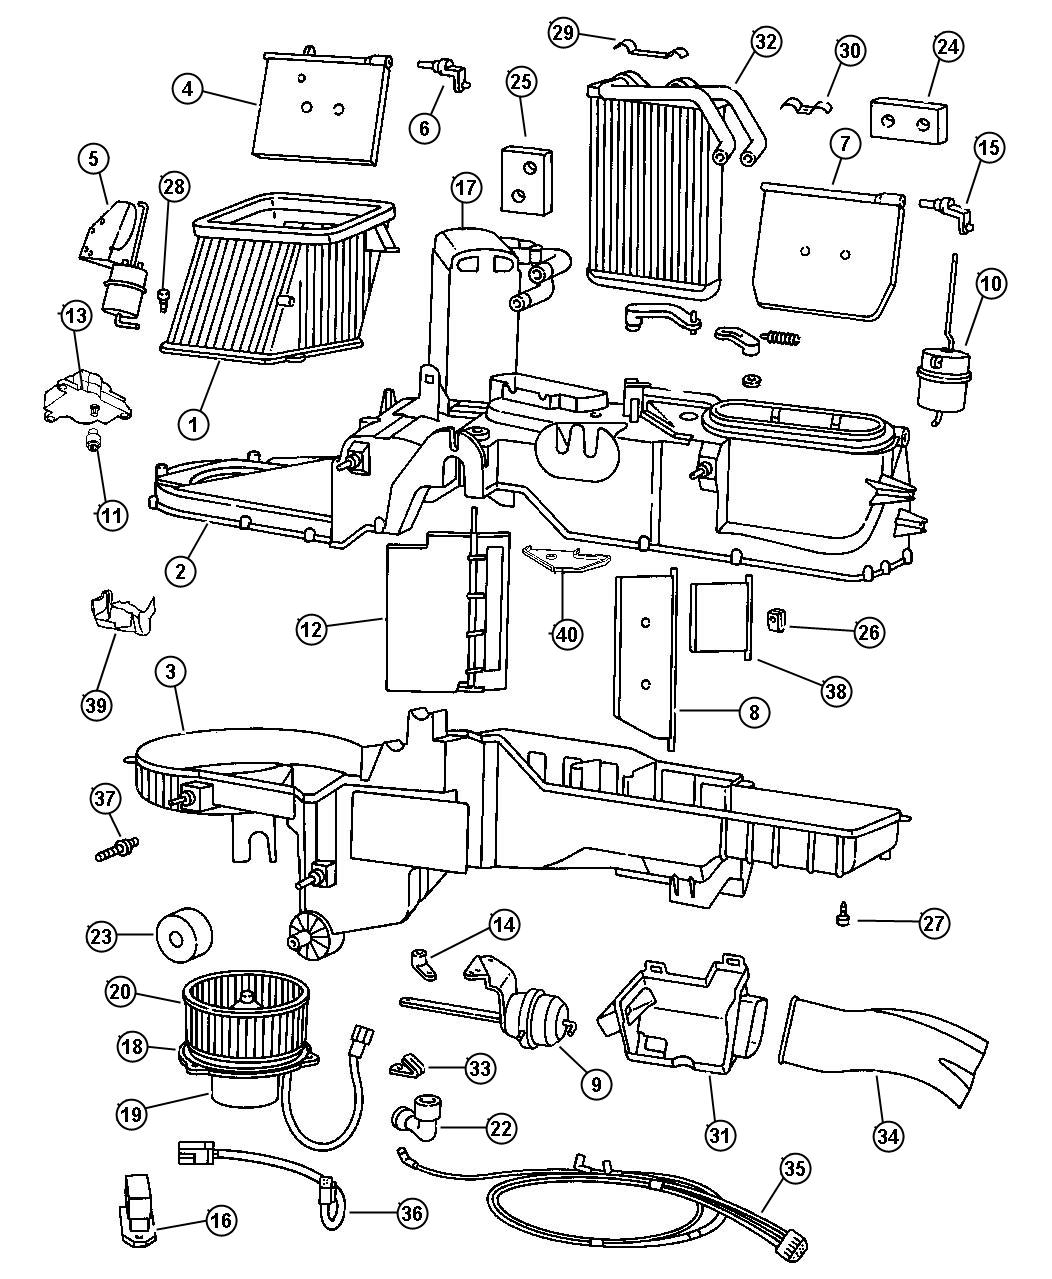 1997 Dodge Ram 3500 Parts Diagram